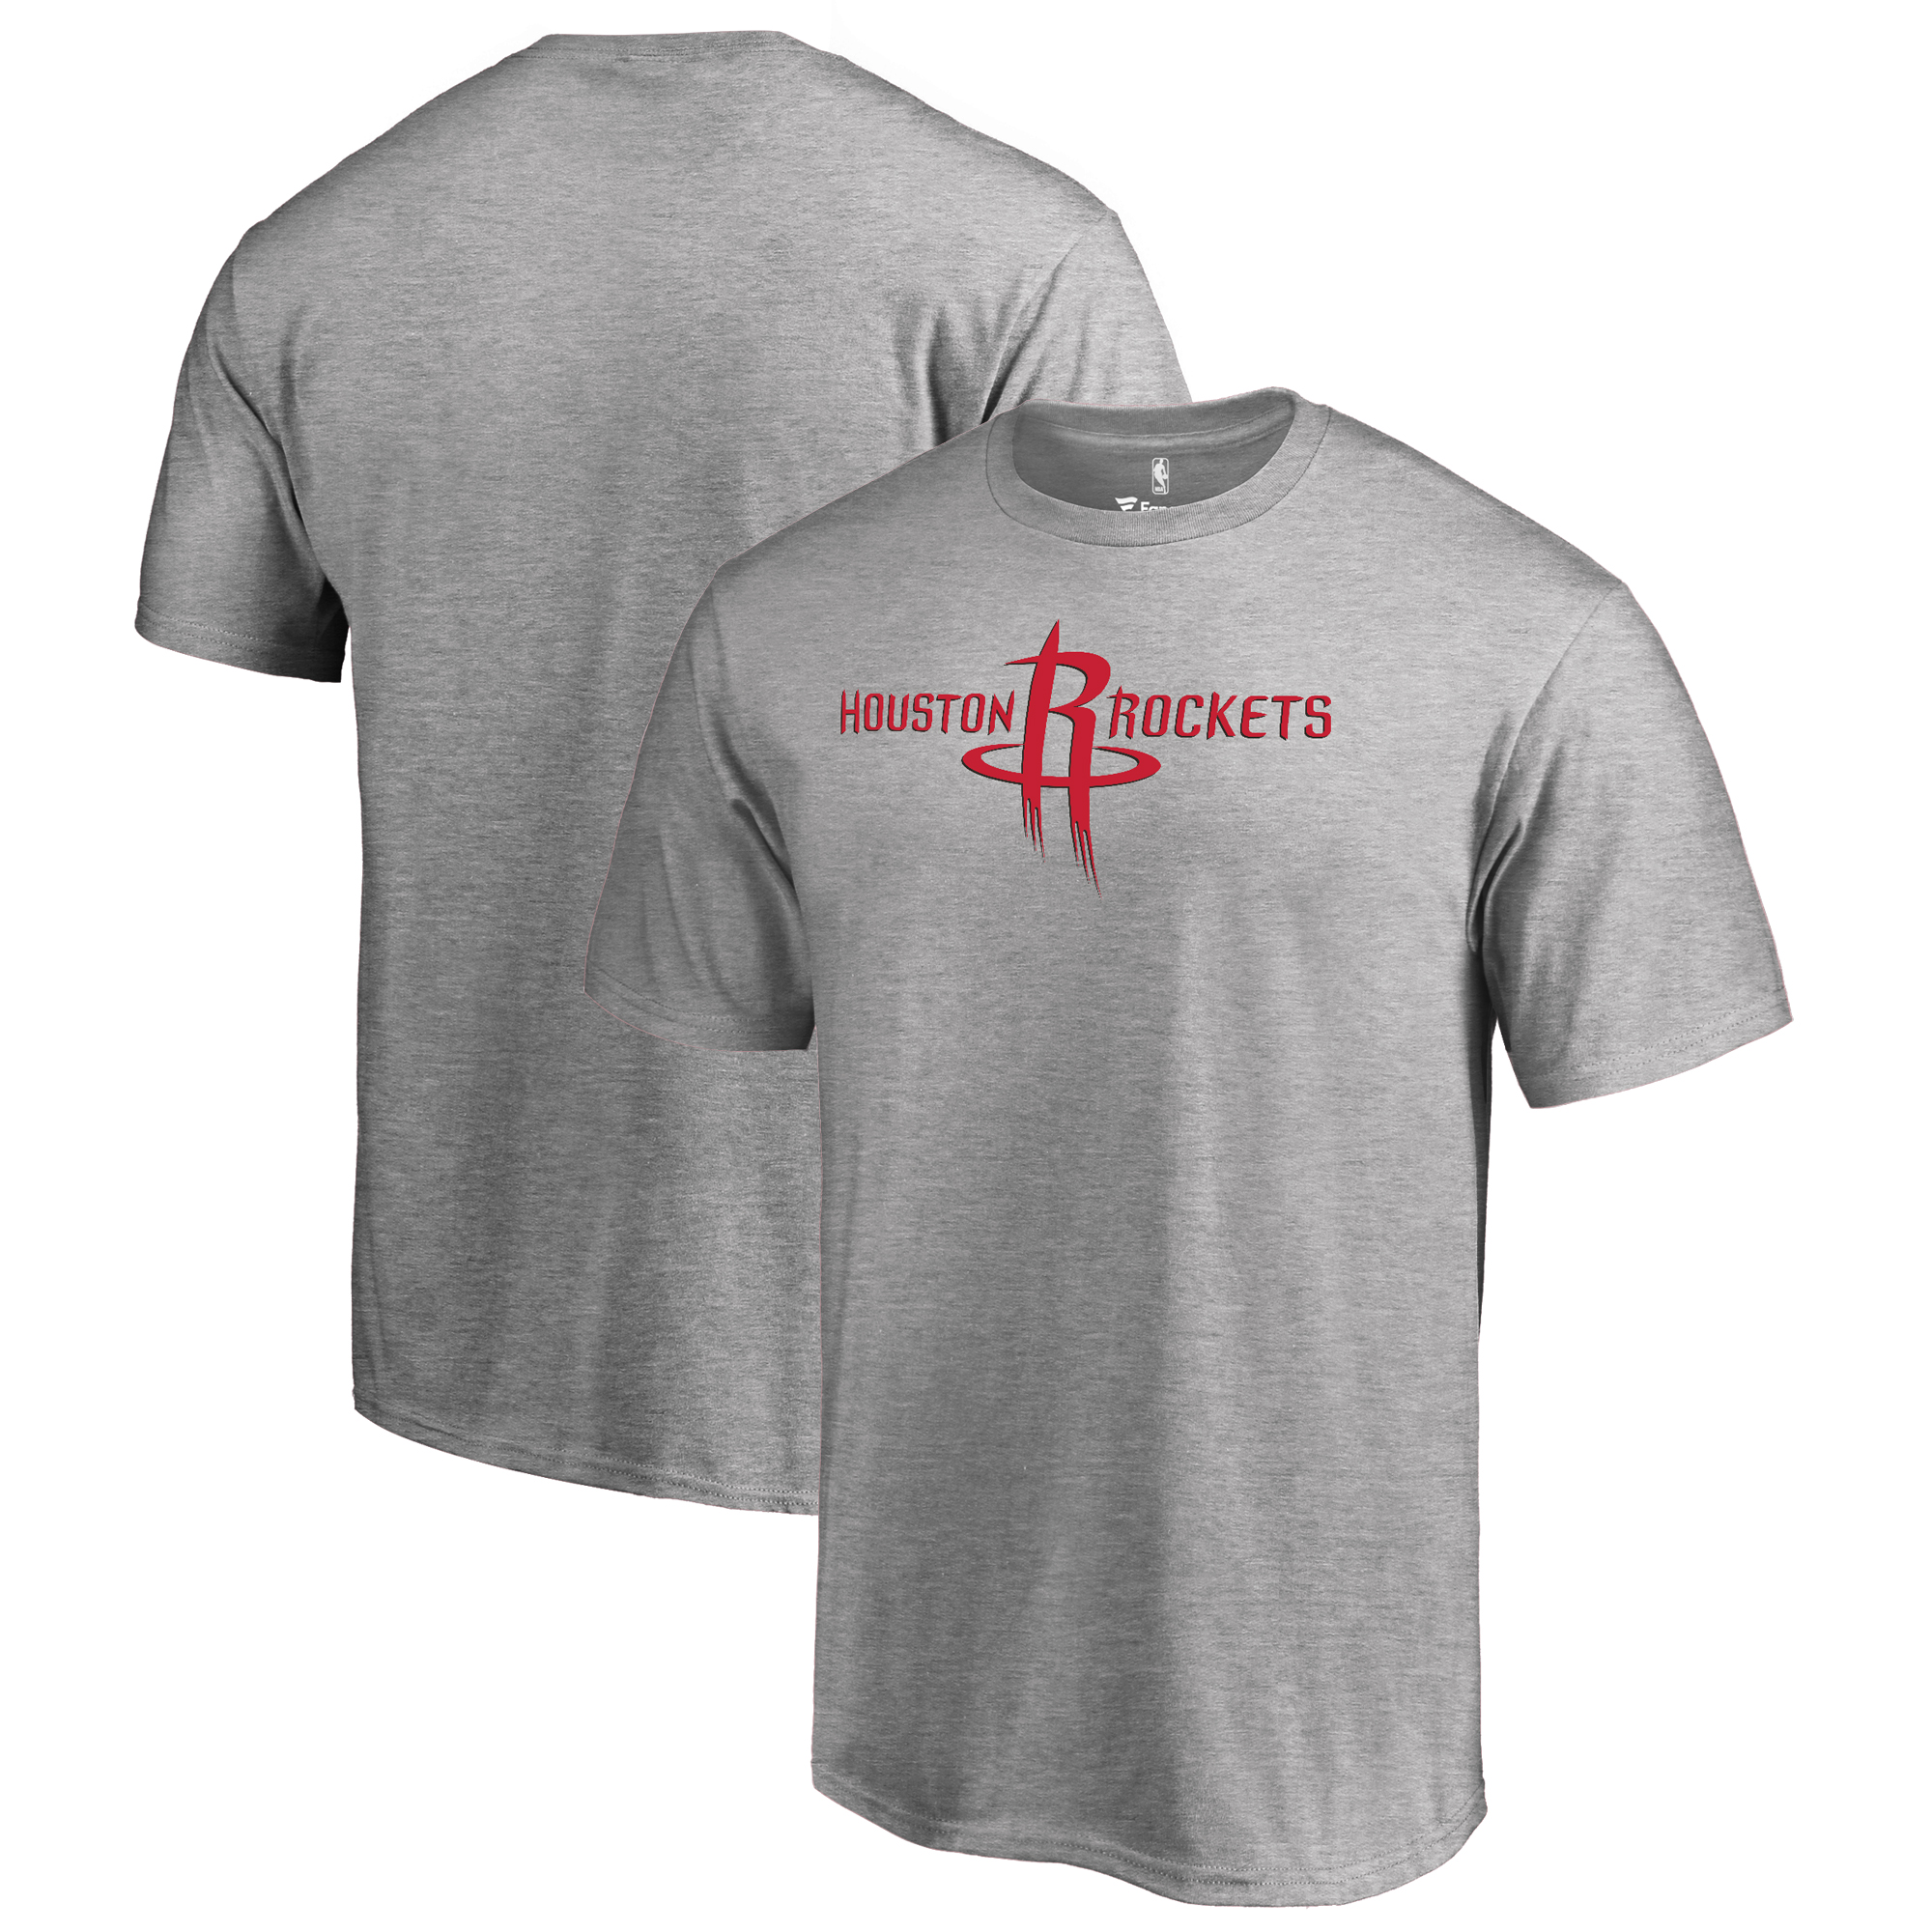 Houston Rockets Fanatics Branded Primary Logo T-Shirt - Heather Gray